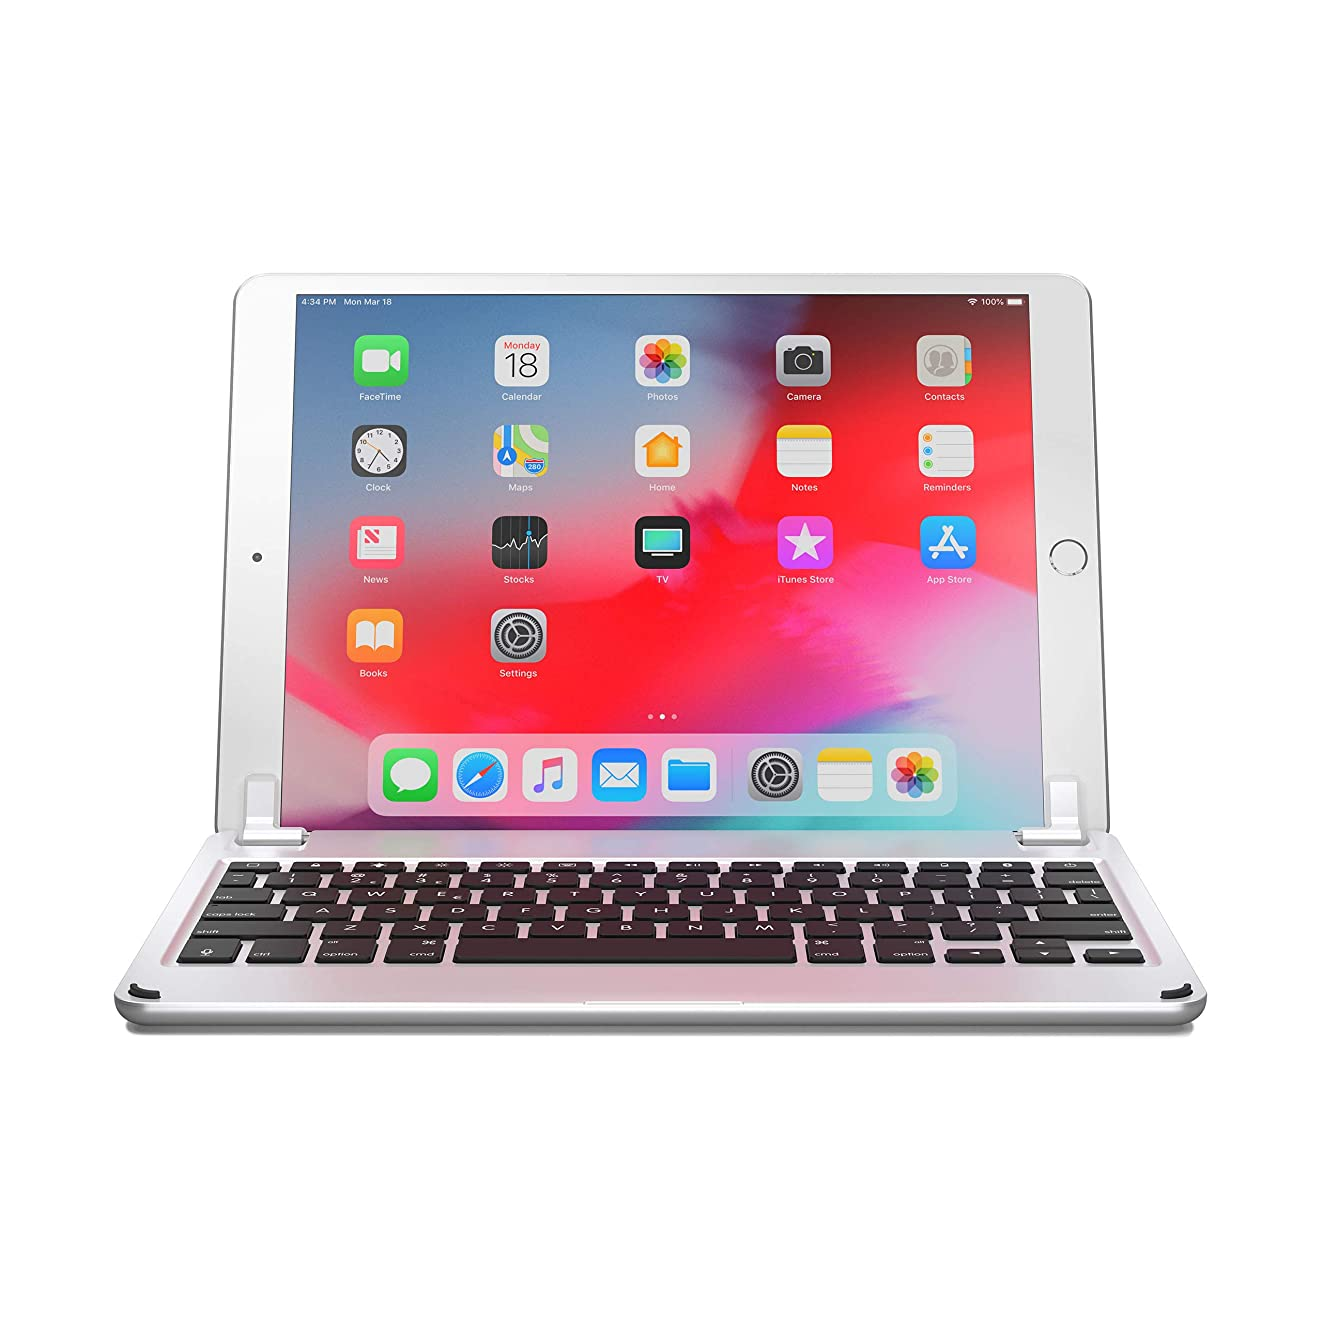 Brydge 10.5 Keyboard for iPad Air (2019) and iPad Pro 10.5 inch, Aluminum Bluetooth Keyboard with Backlit Keys (Silver)